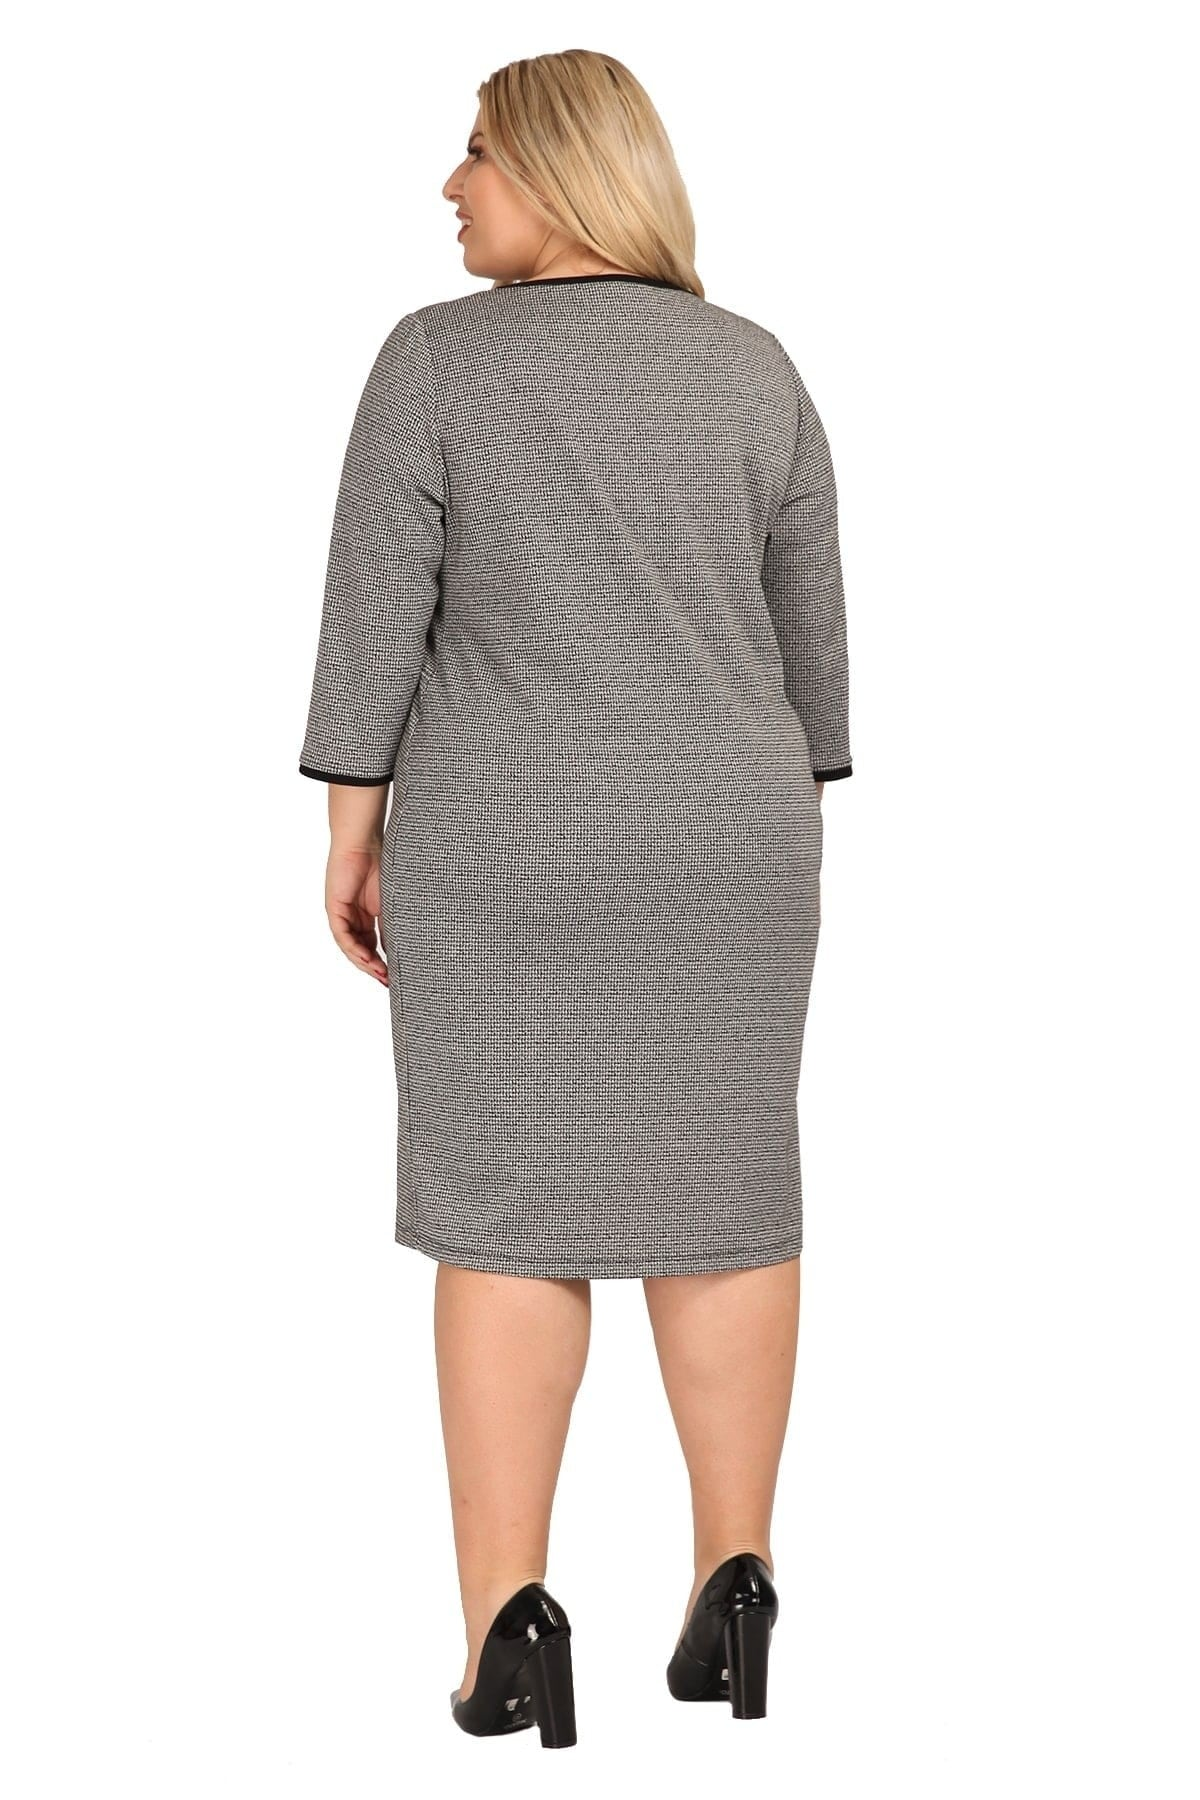 Jacquard midi dress with buttons